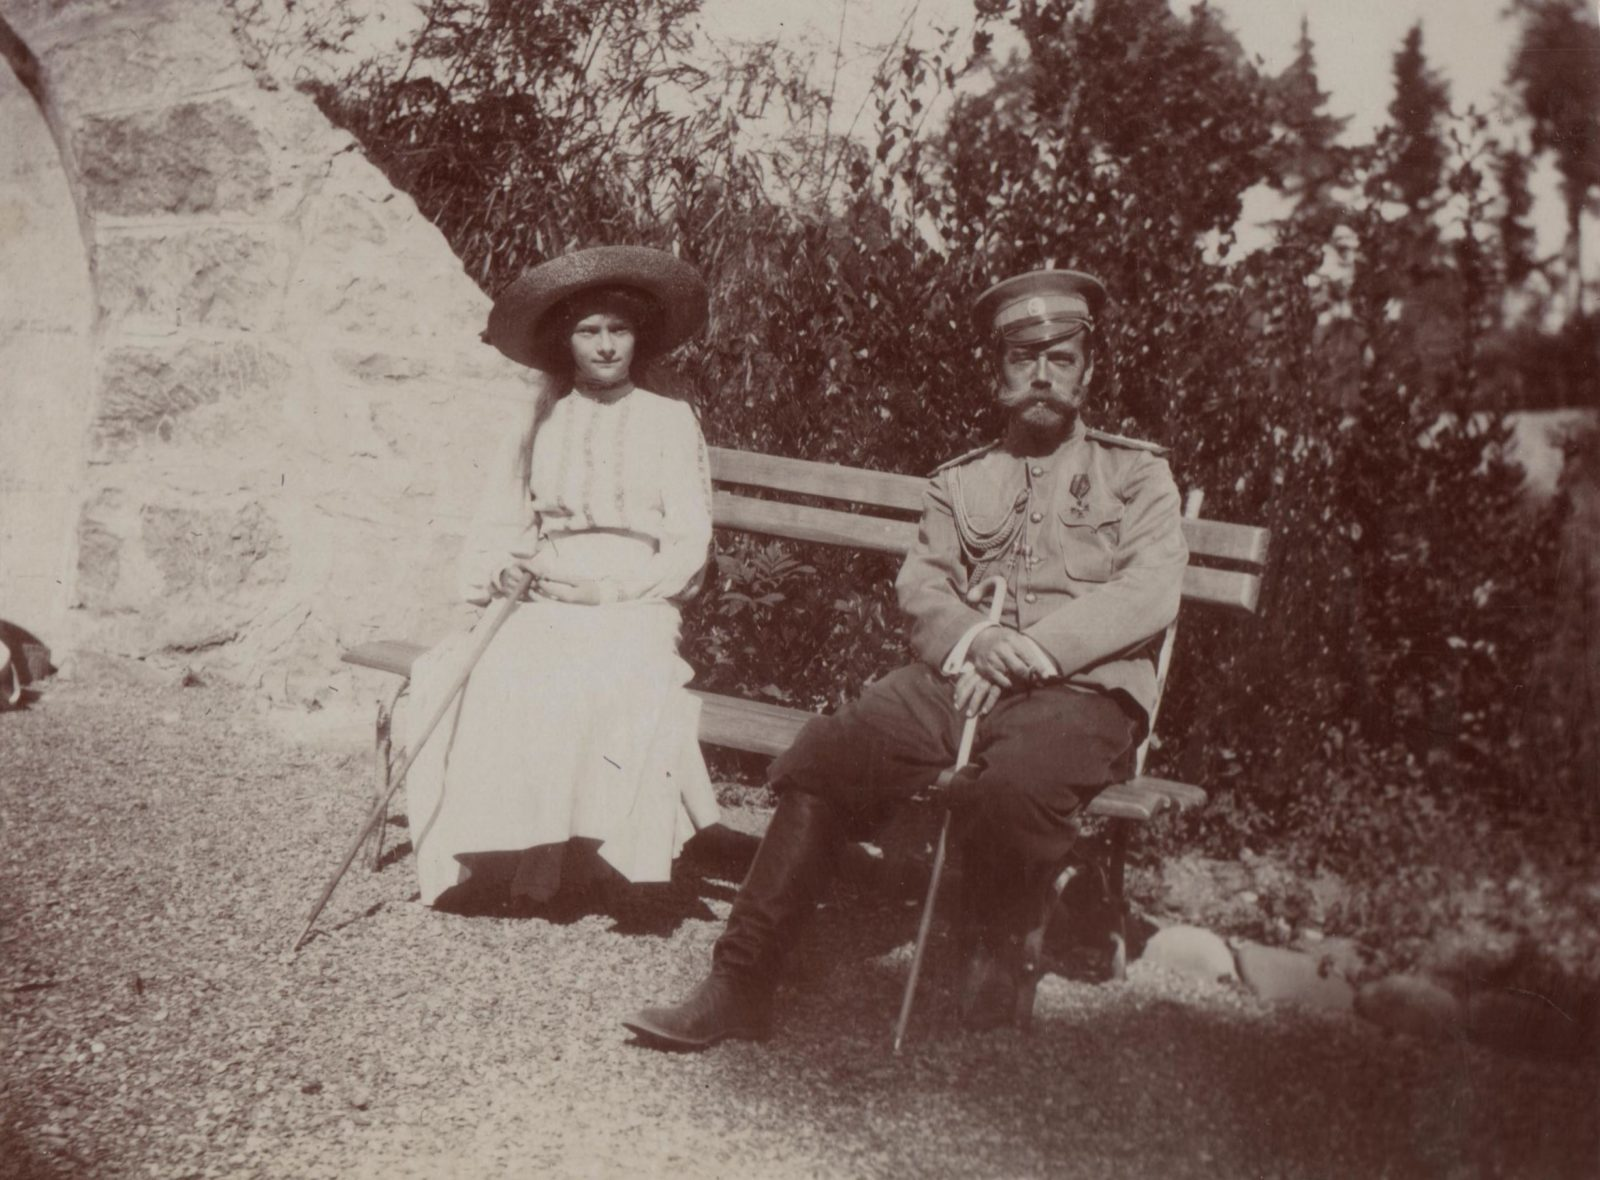 Emperor Nicholas II and his daughter Tatiana.